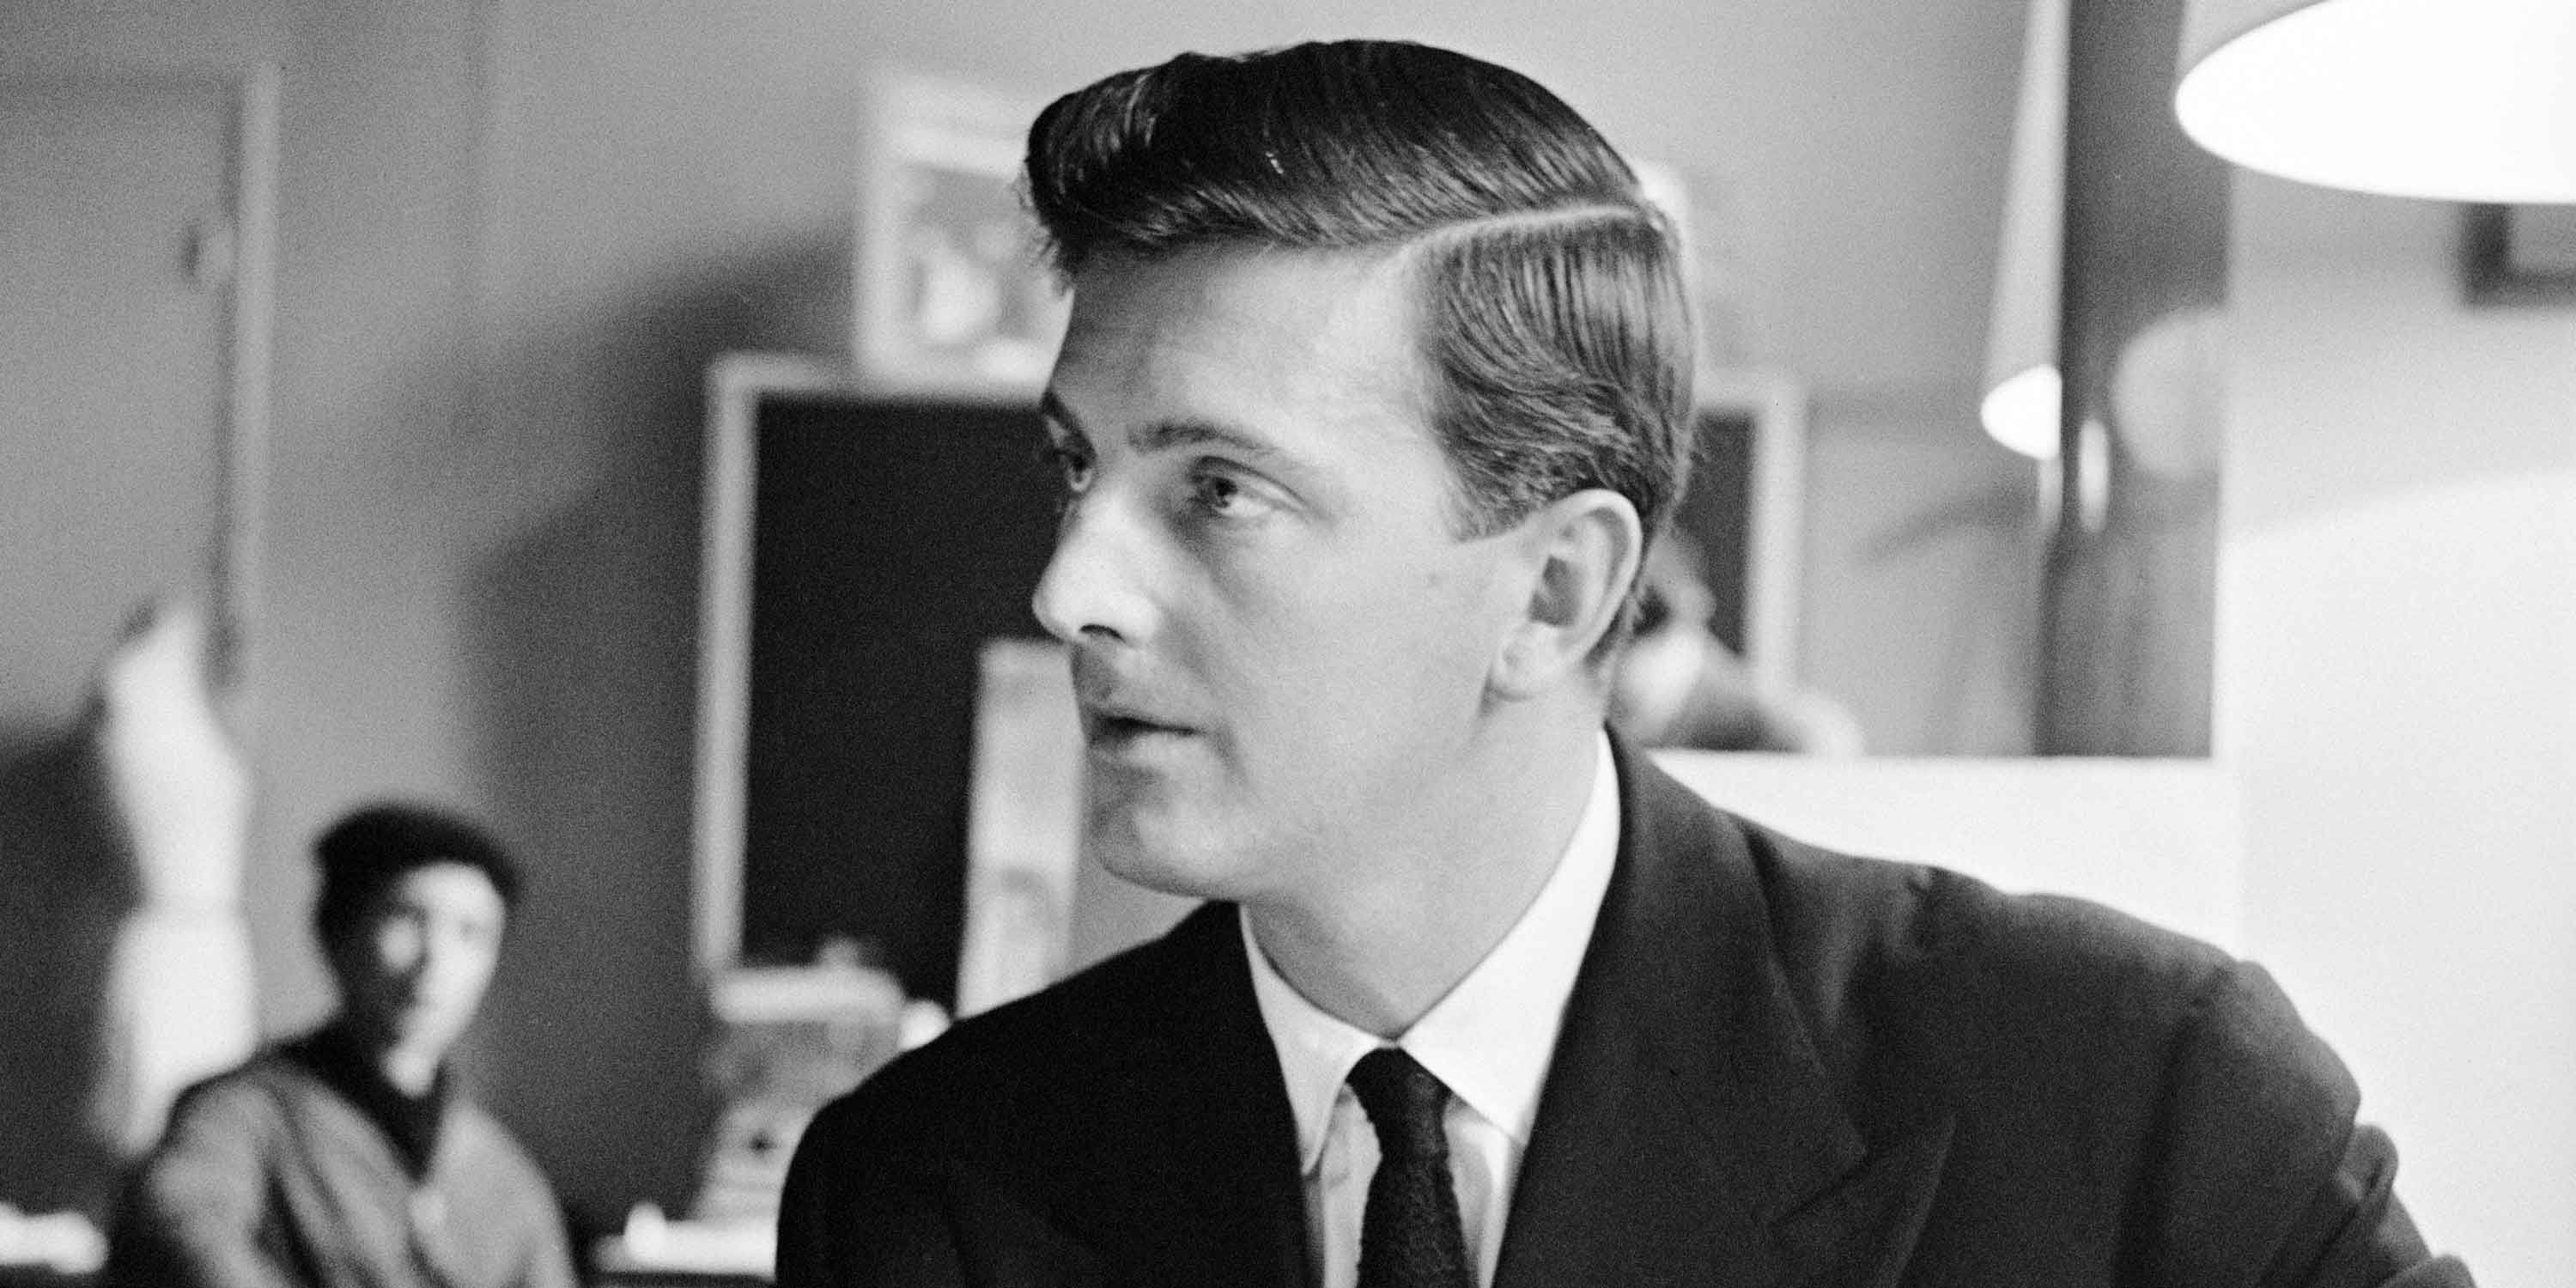 Hubert de Givenchy, French fashion designer: biography, personal life, career 57